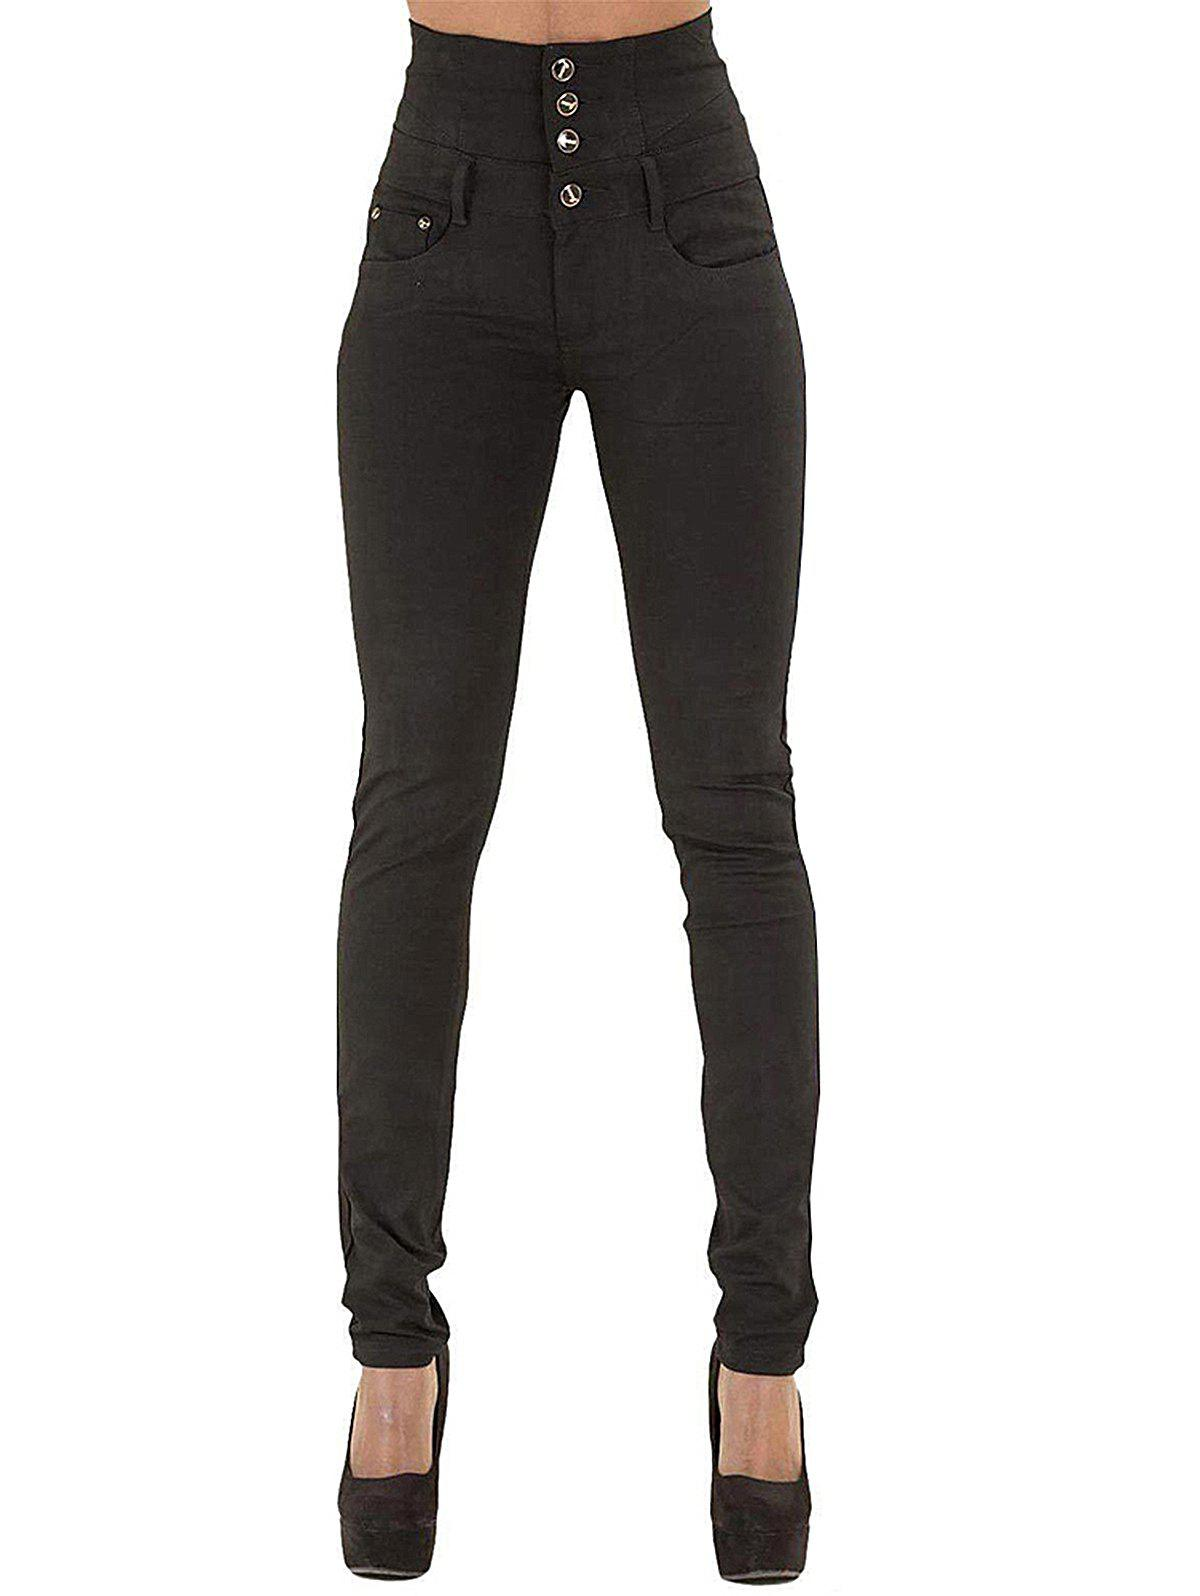 Sale Womens Fashion High Waisted Stretch Skinny Denim Jeans